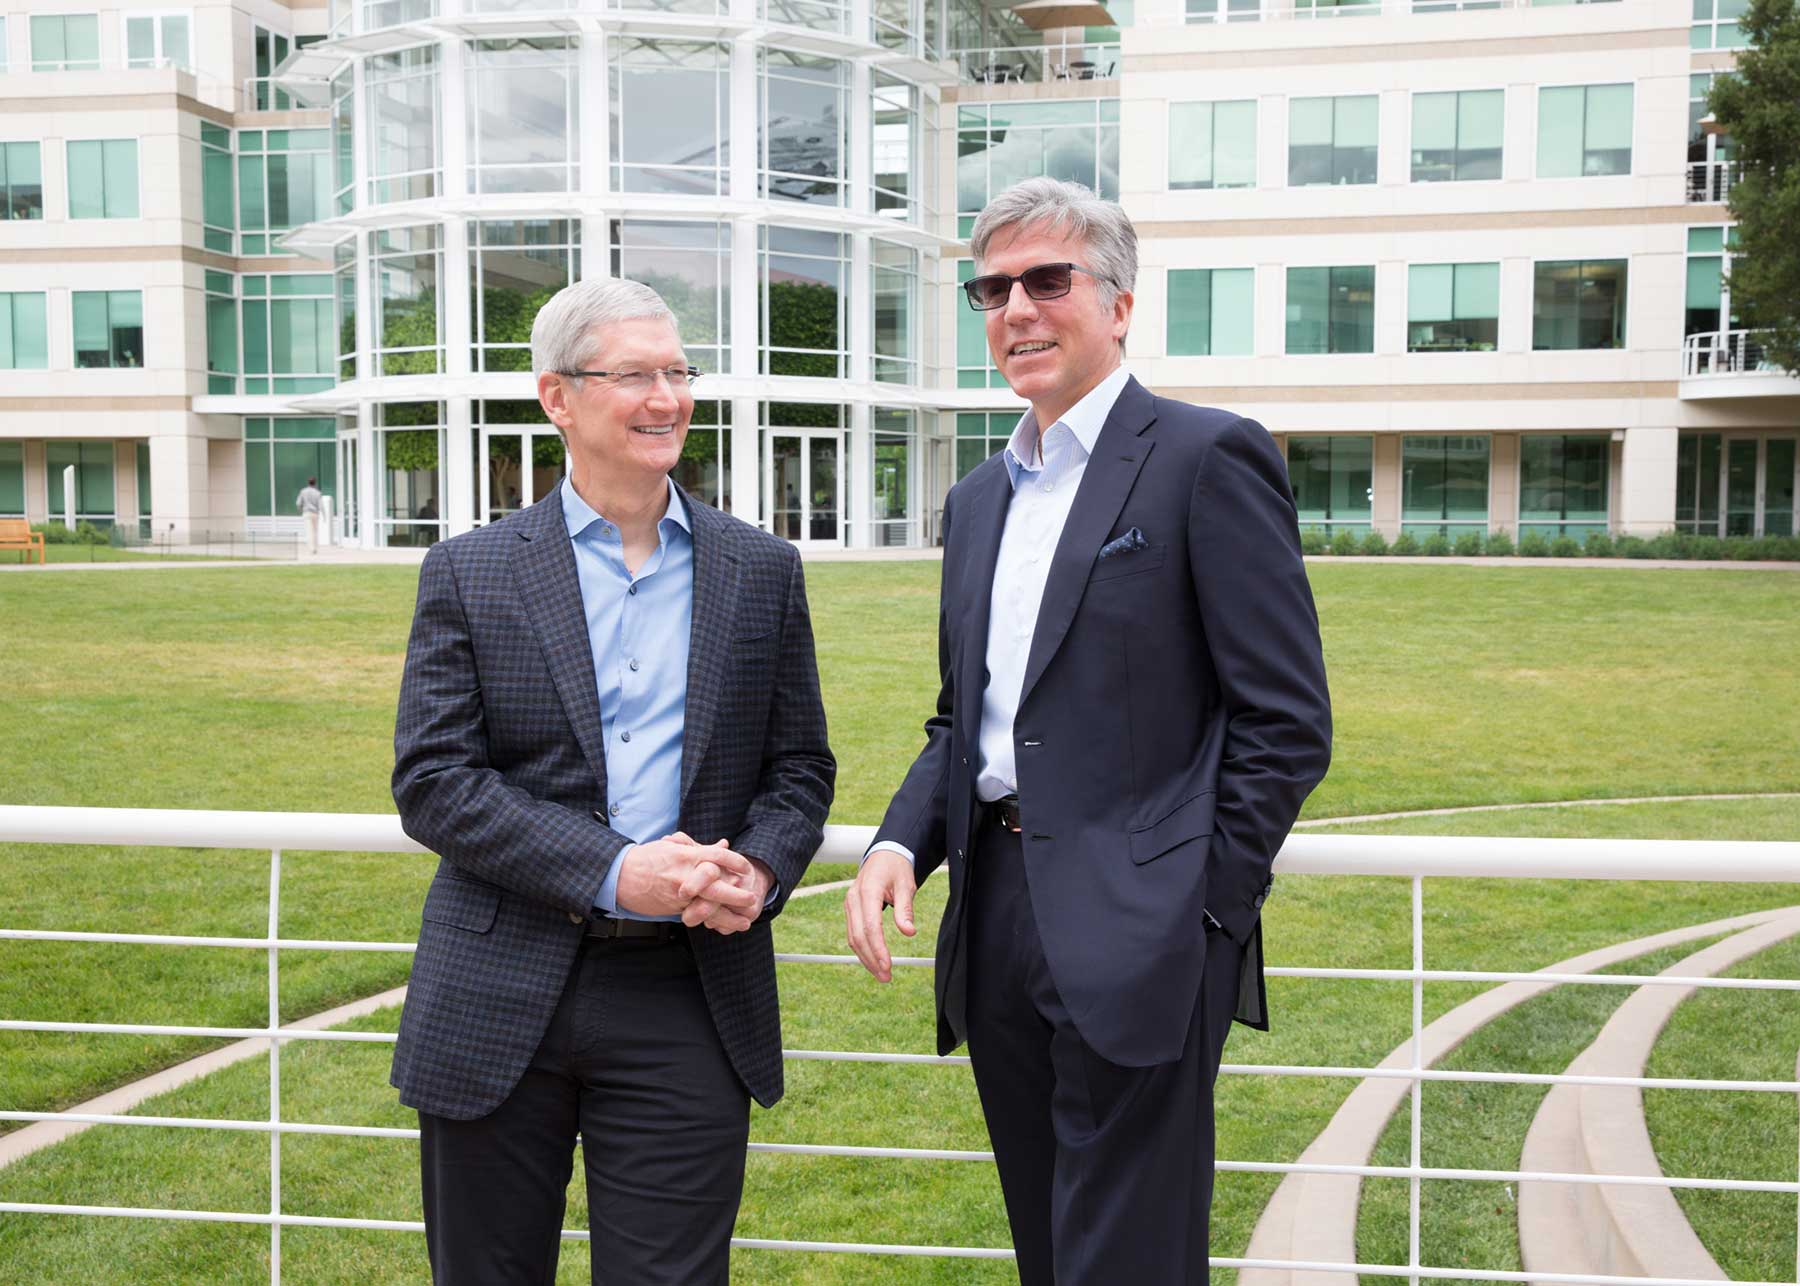 Tim Cook, CEO d'Apple, et Bill McDermott, CEO de SAP. © Apple/Roy Zipstein